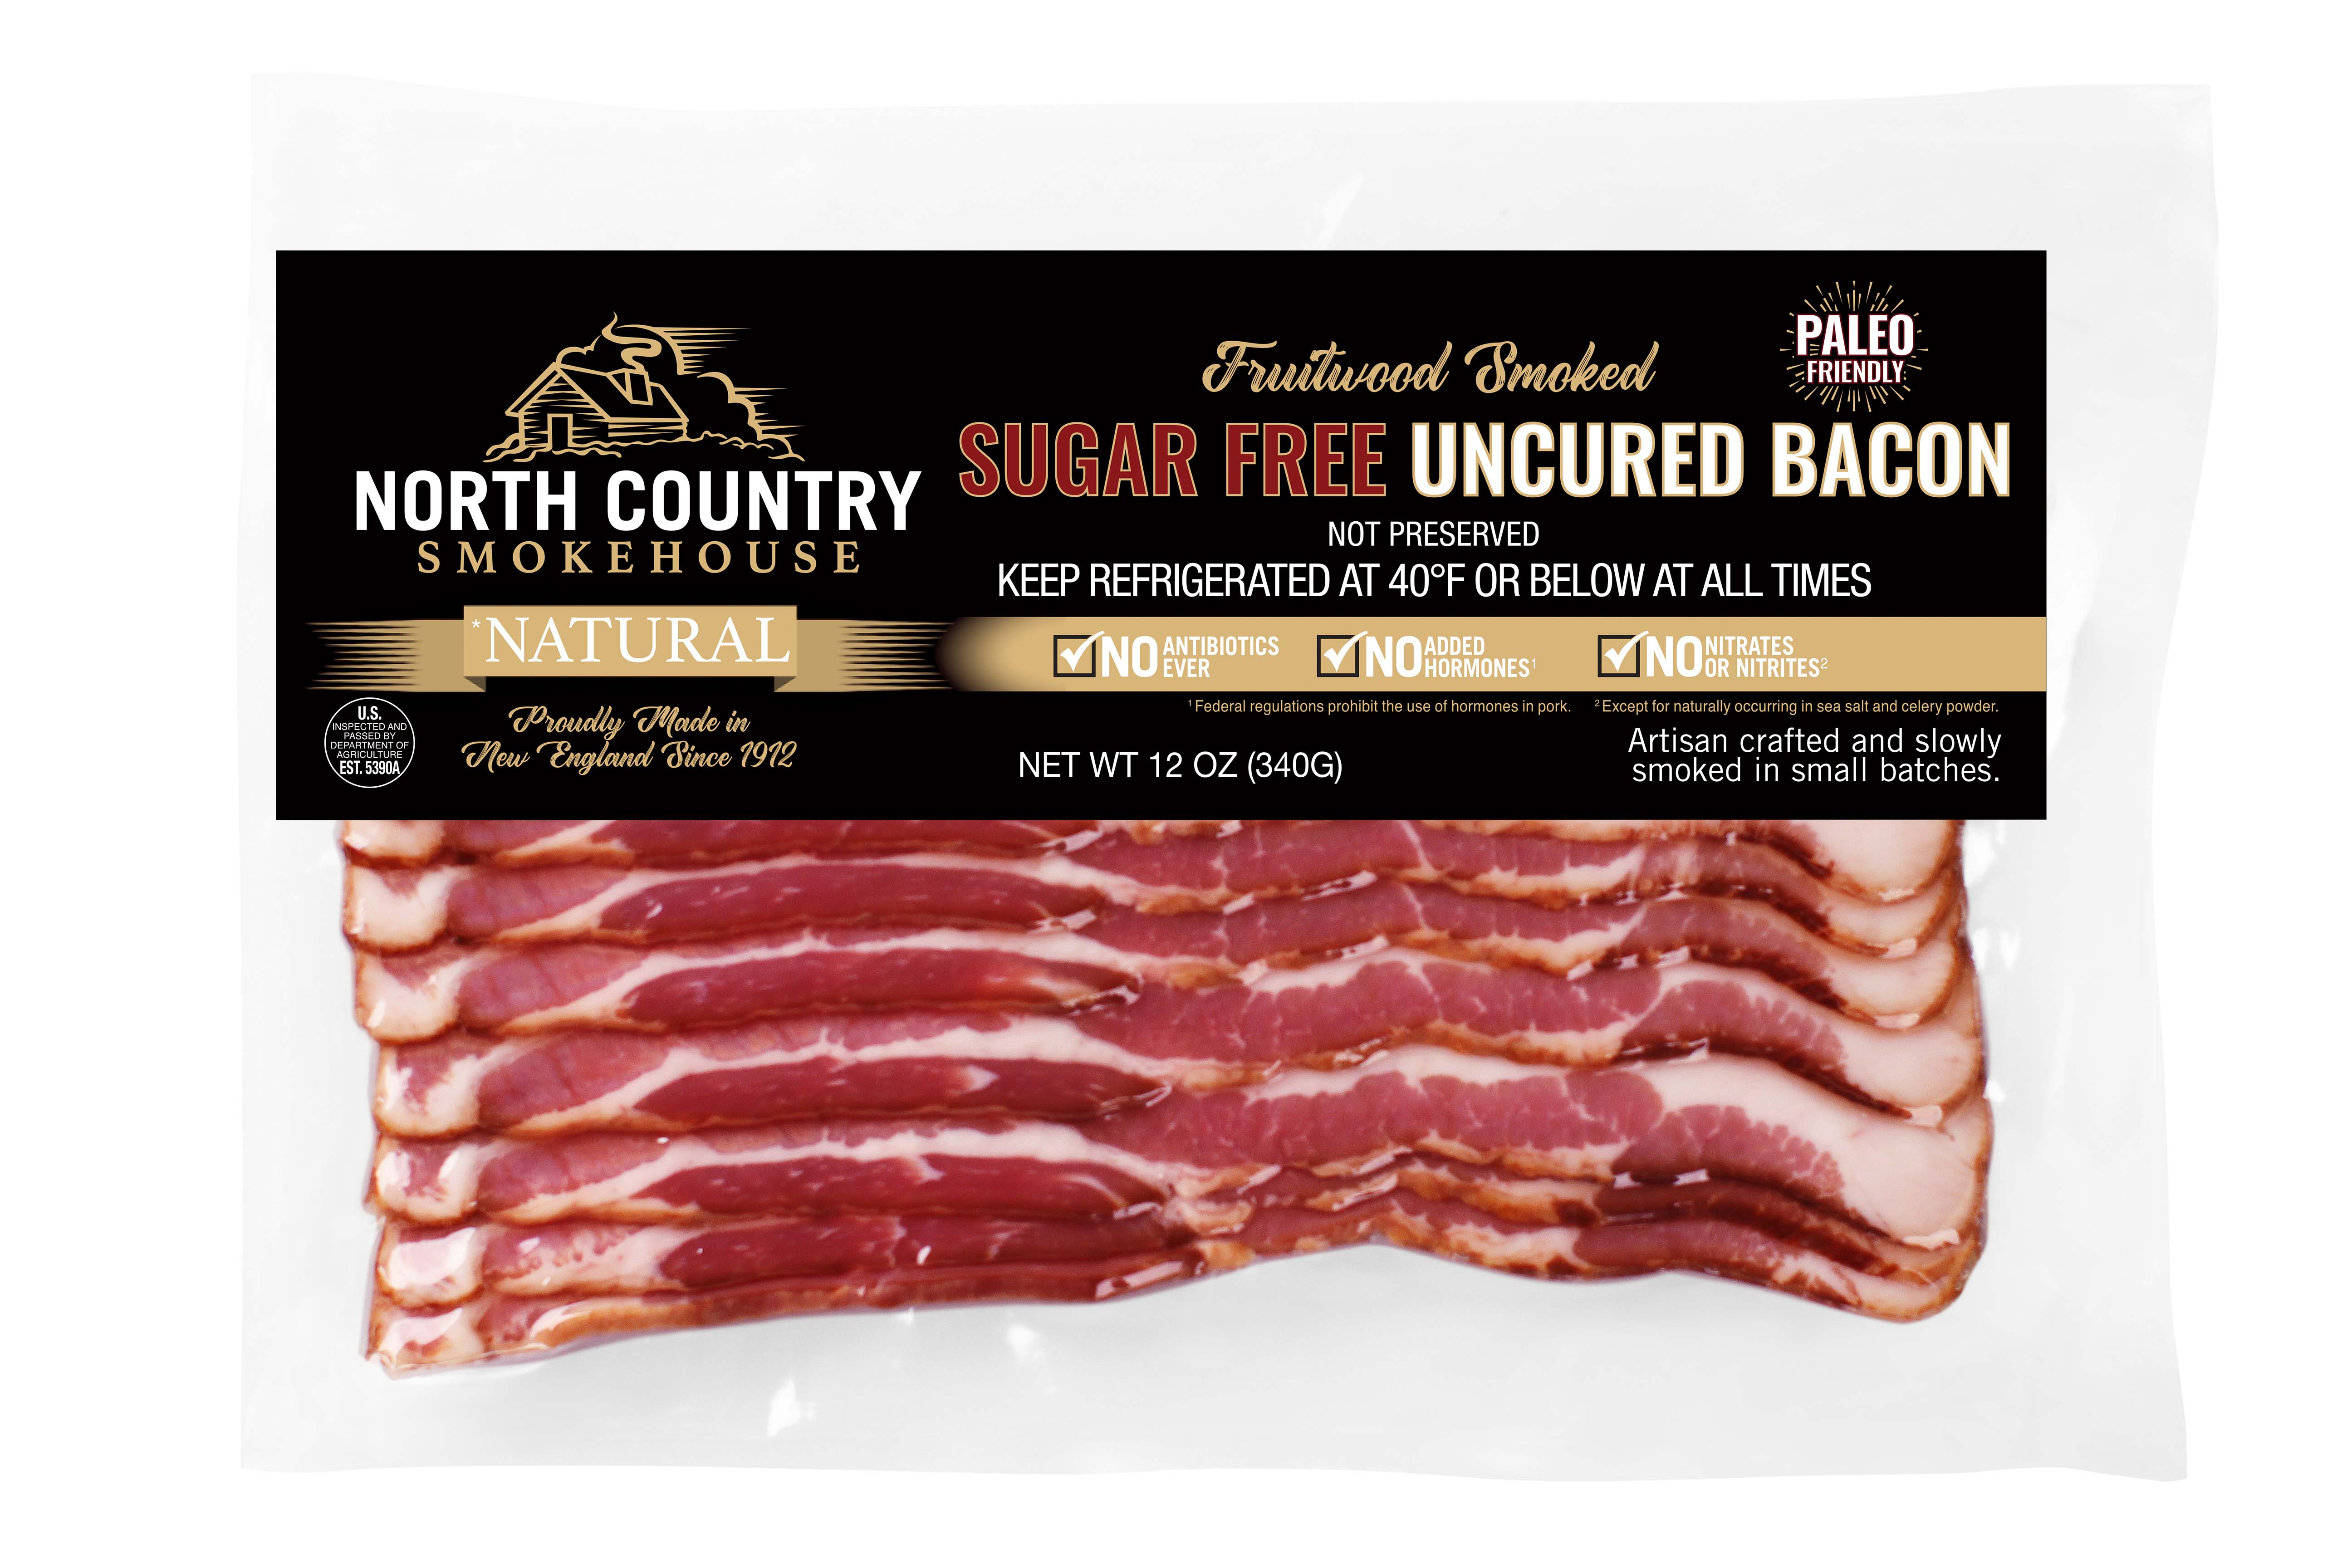 Natural Sugar Free Fruitwood Smoked Bacon - 2, 12oz. packages